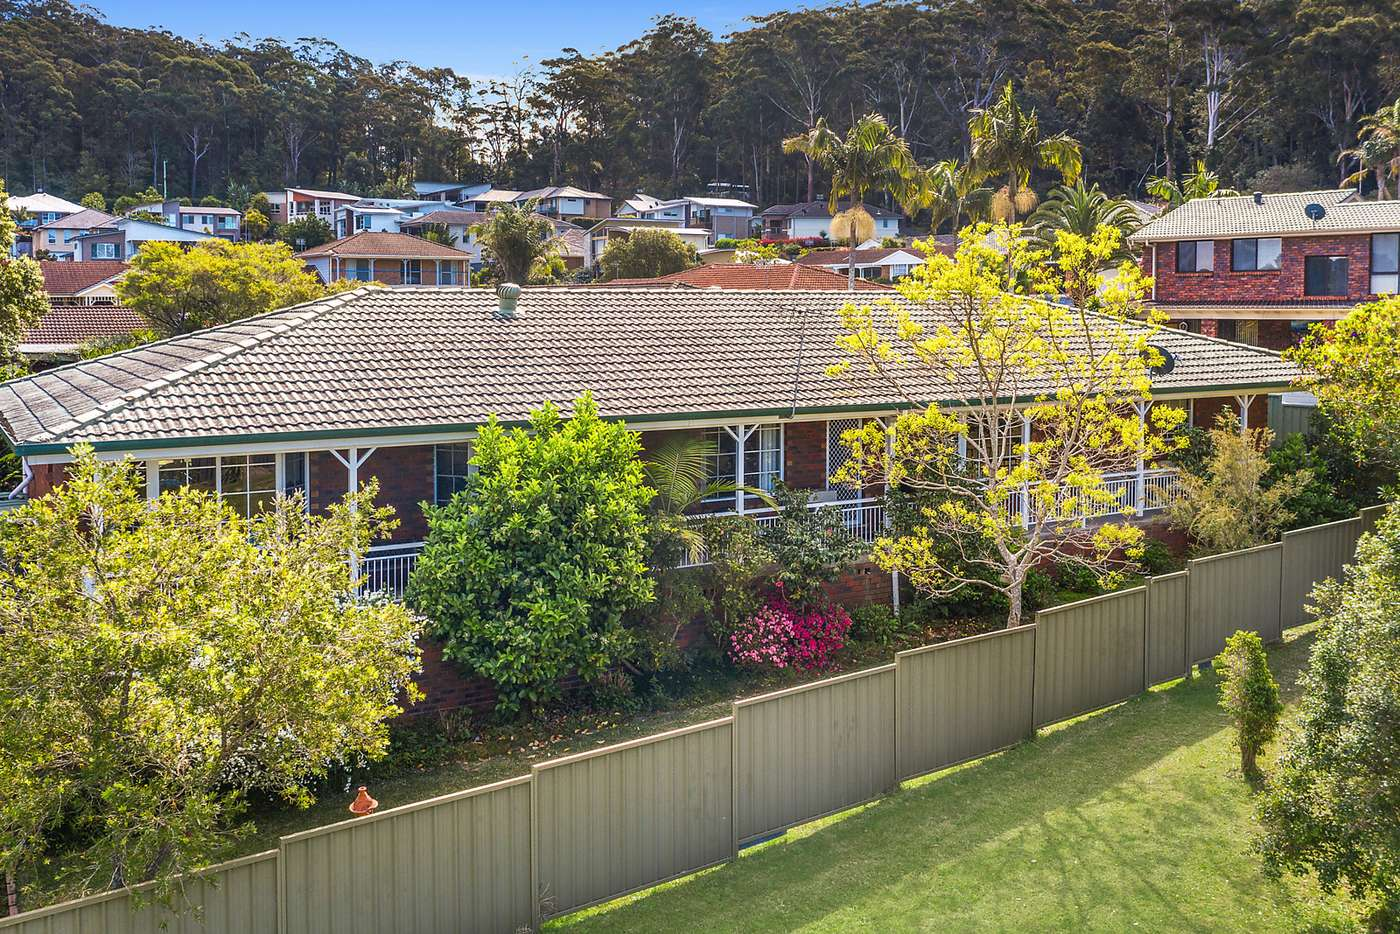 Main view of Homely house listing, 11 Boora Boora Road, Kincumber NSW 2251